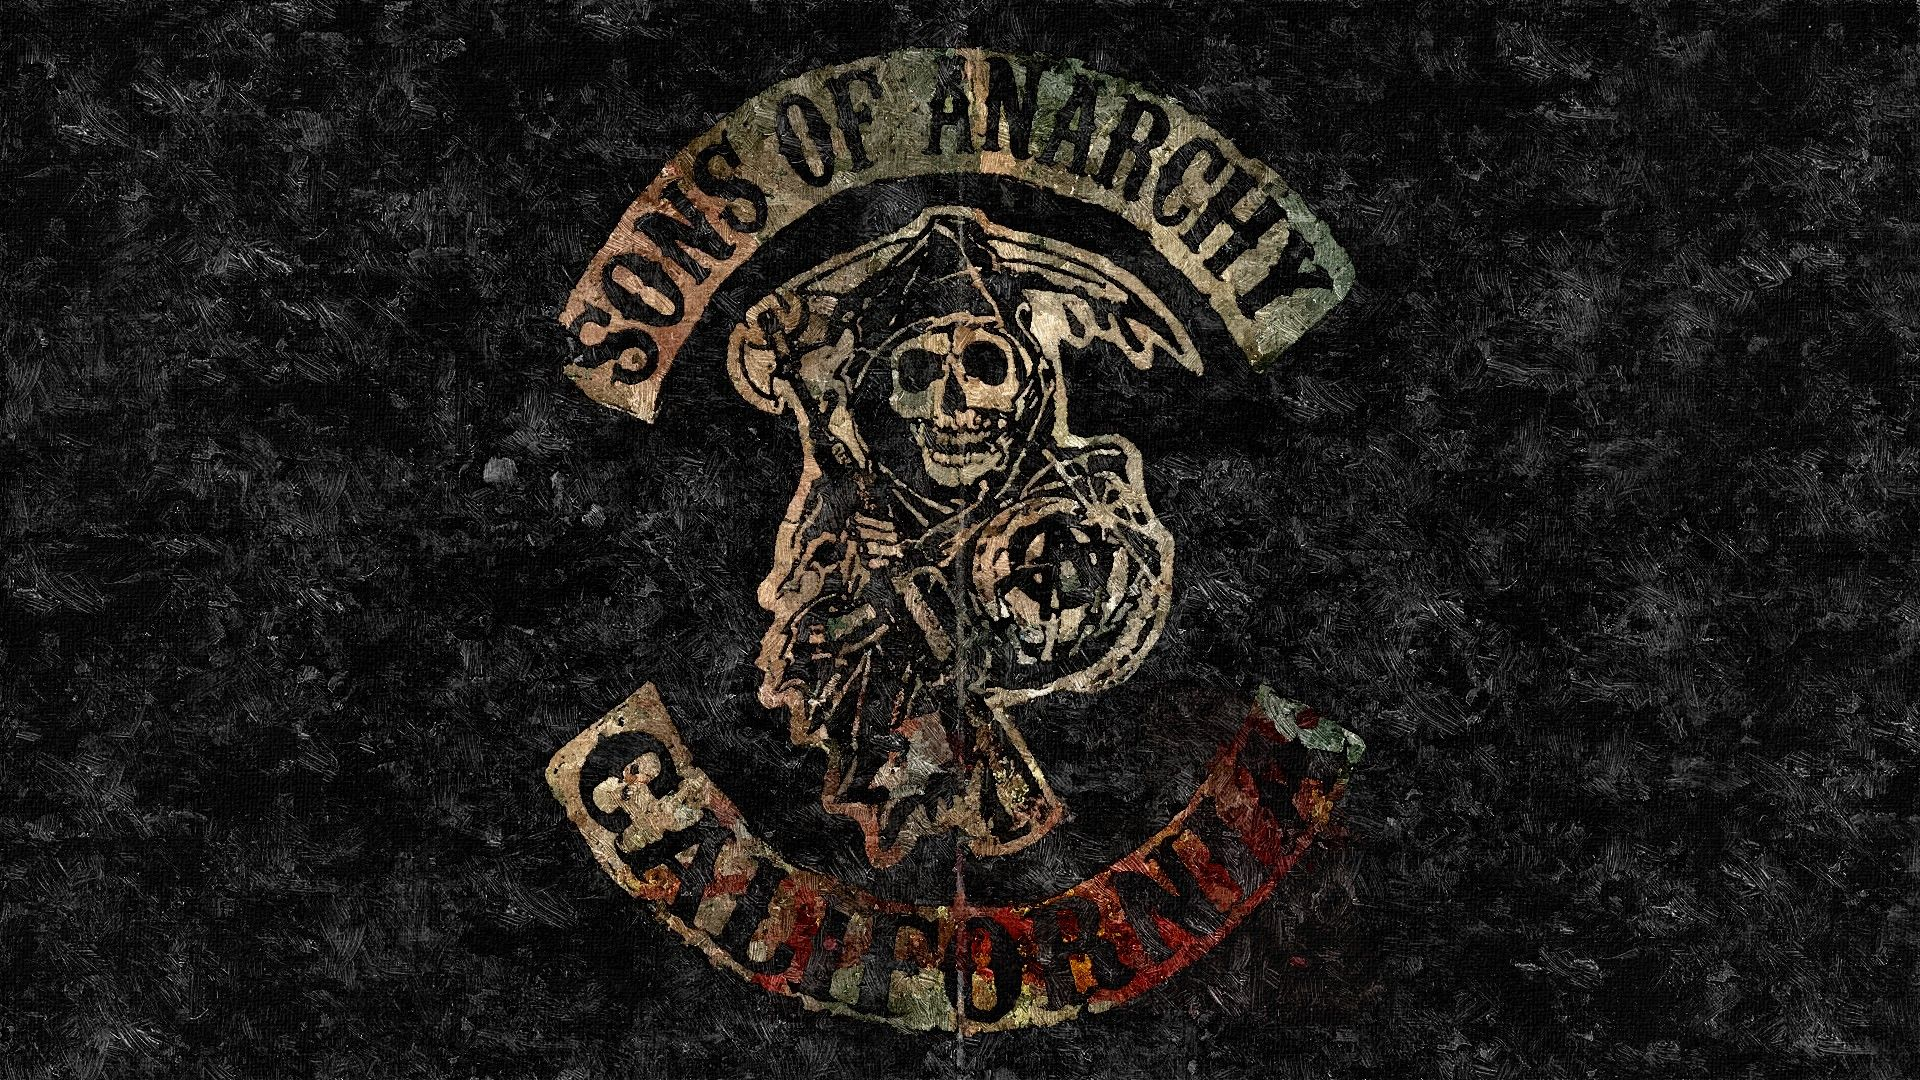 New Soa Skull Wallpapers Top Free New Soa Skull Backgrounds